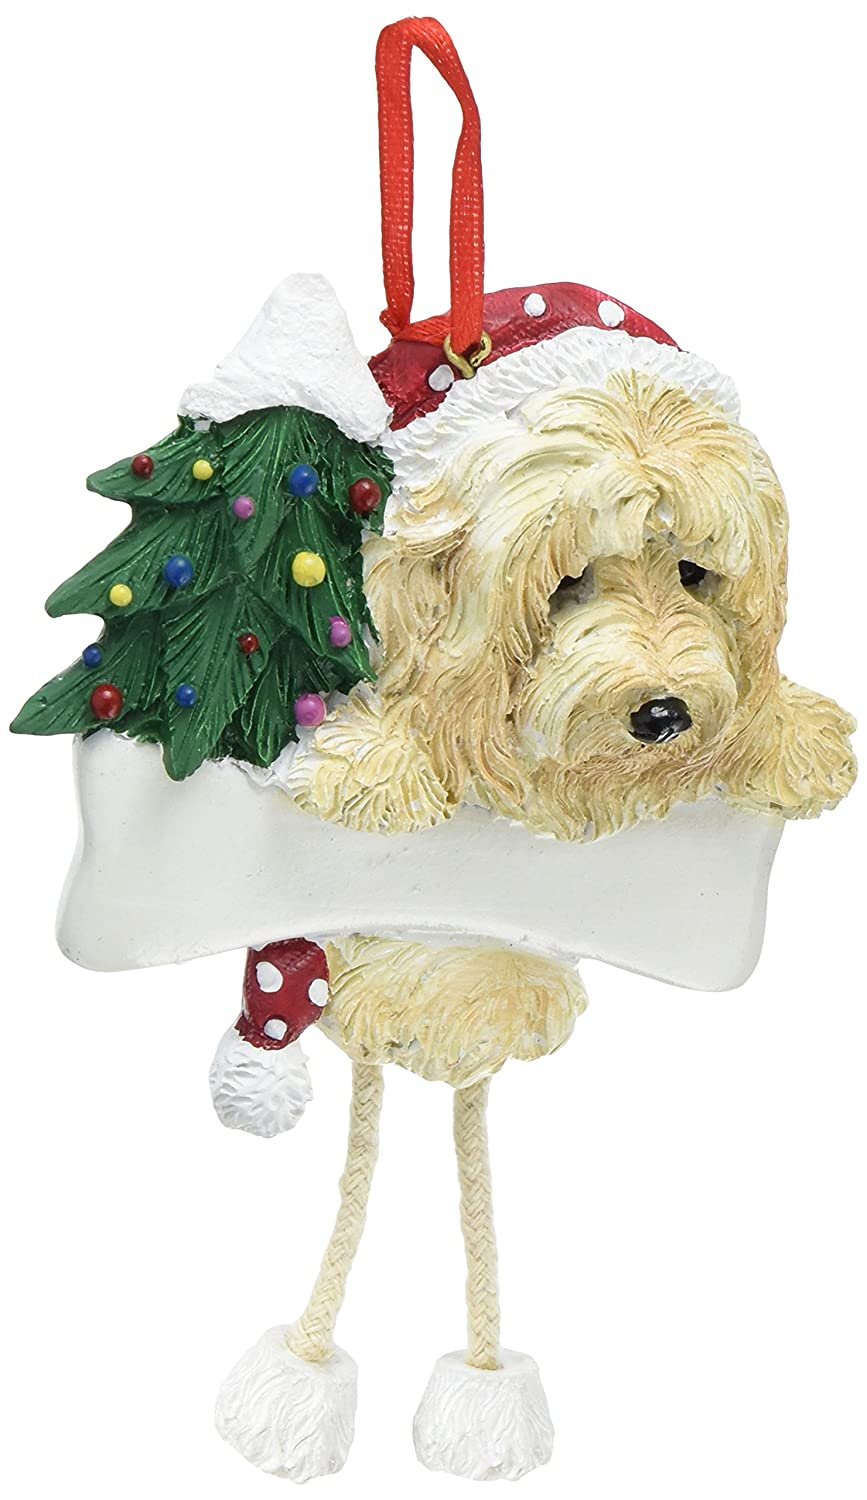 Sports christmas ornaments - Amazon Com Goldendoodle Ornament With Unique Dangling Legs Hand Painted And Easily Personalized Christmas Ornament Pet Supplies